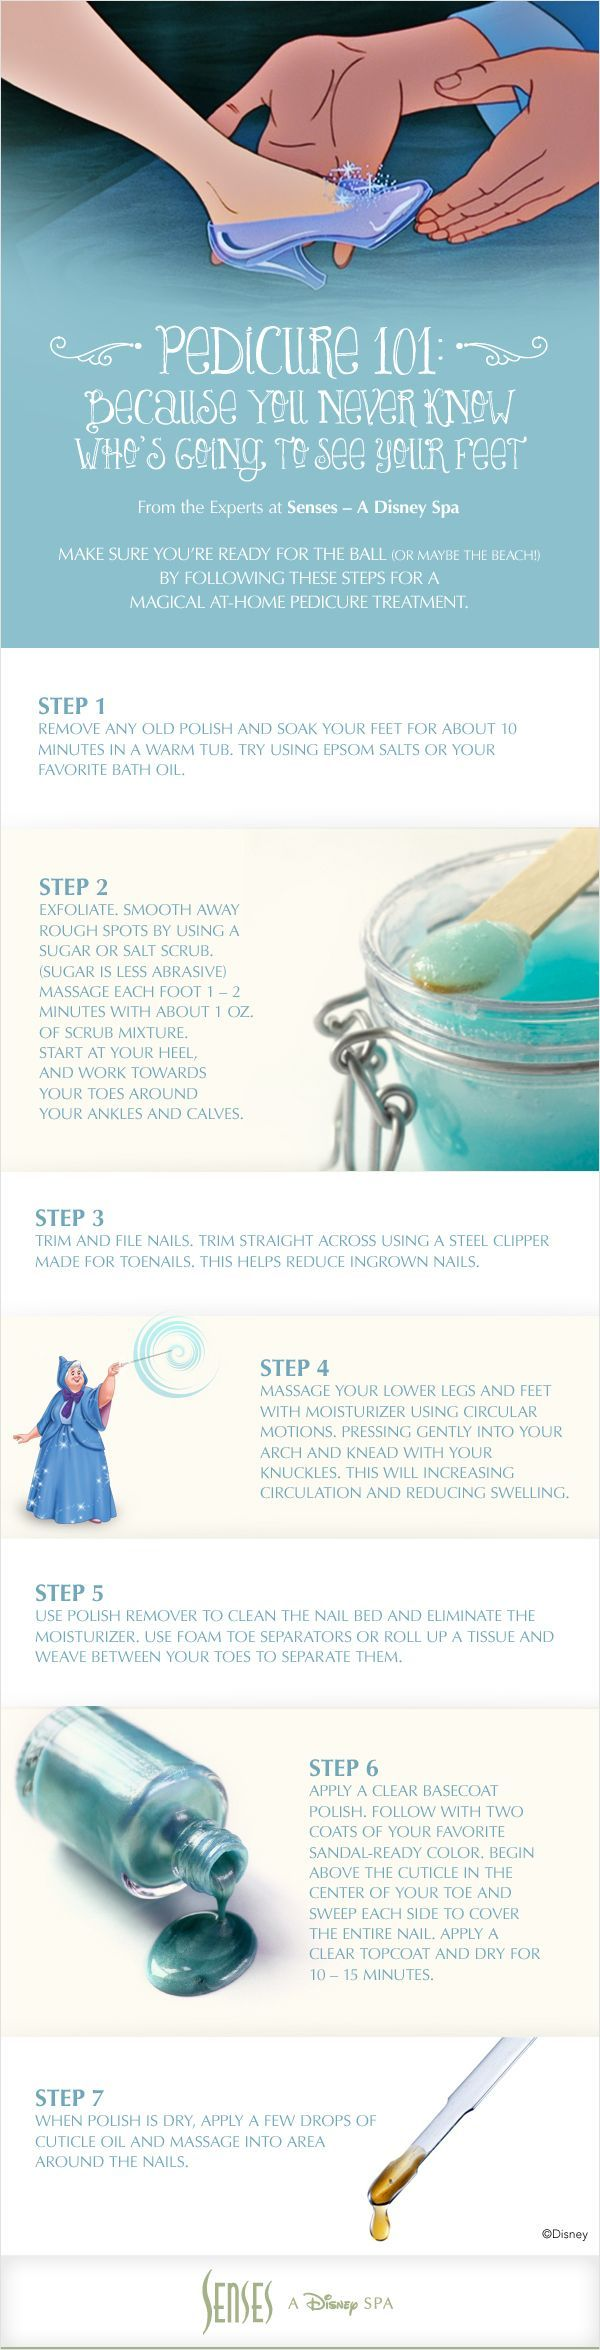 Pedicure 101: Because you never know whos going to see your feet! (Especially if you tend to wear glass slippers.) Follow these Disney pedicure DIY steps for a magical at-home treatment, fit for a princess. Brought to you by Senses A Disney Spa.